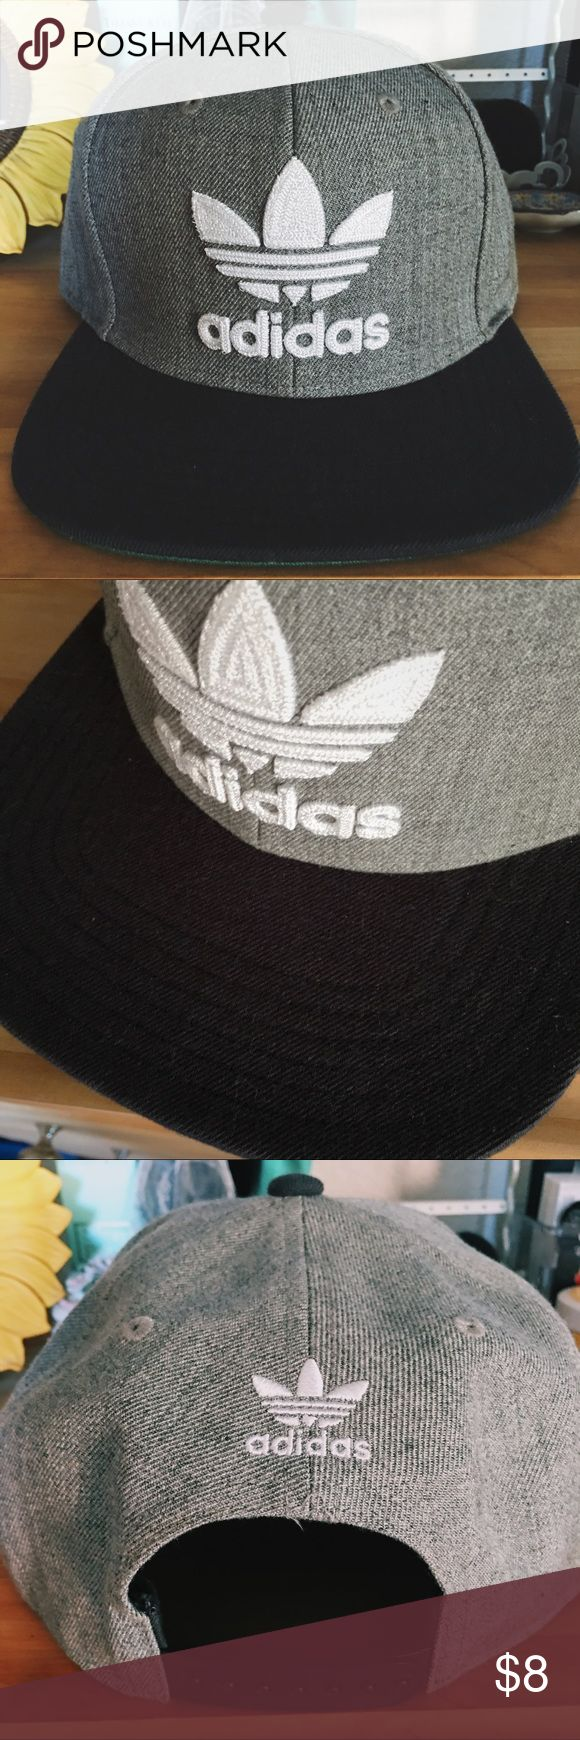 Adidas SnapBack Hat Adidas SnackBack Hat in Gray. Can be worn for males or females. Great for casual, street, sport, or dance wear. One Size. IMPORTANT NOTE: Slight foundation stain on the inside of cap, and small stain on the top part of the visor. Item is still in good condition and stains can go unnoticed. adidas Accessories Hats